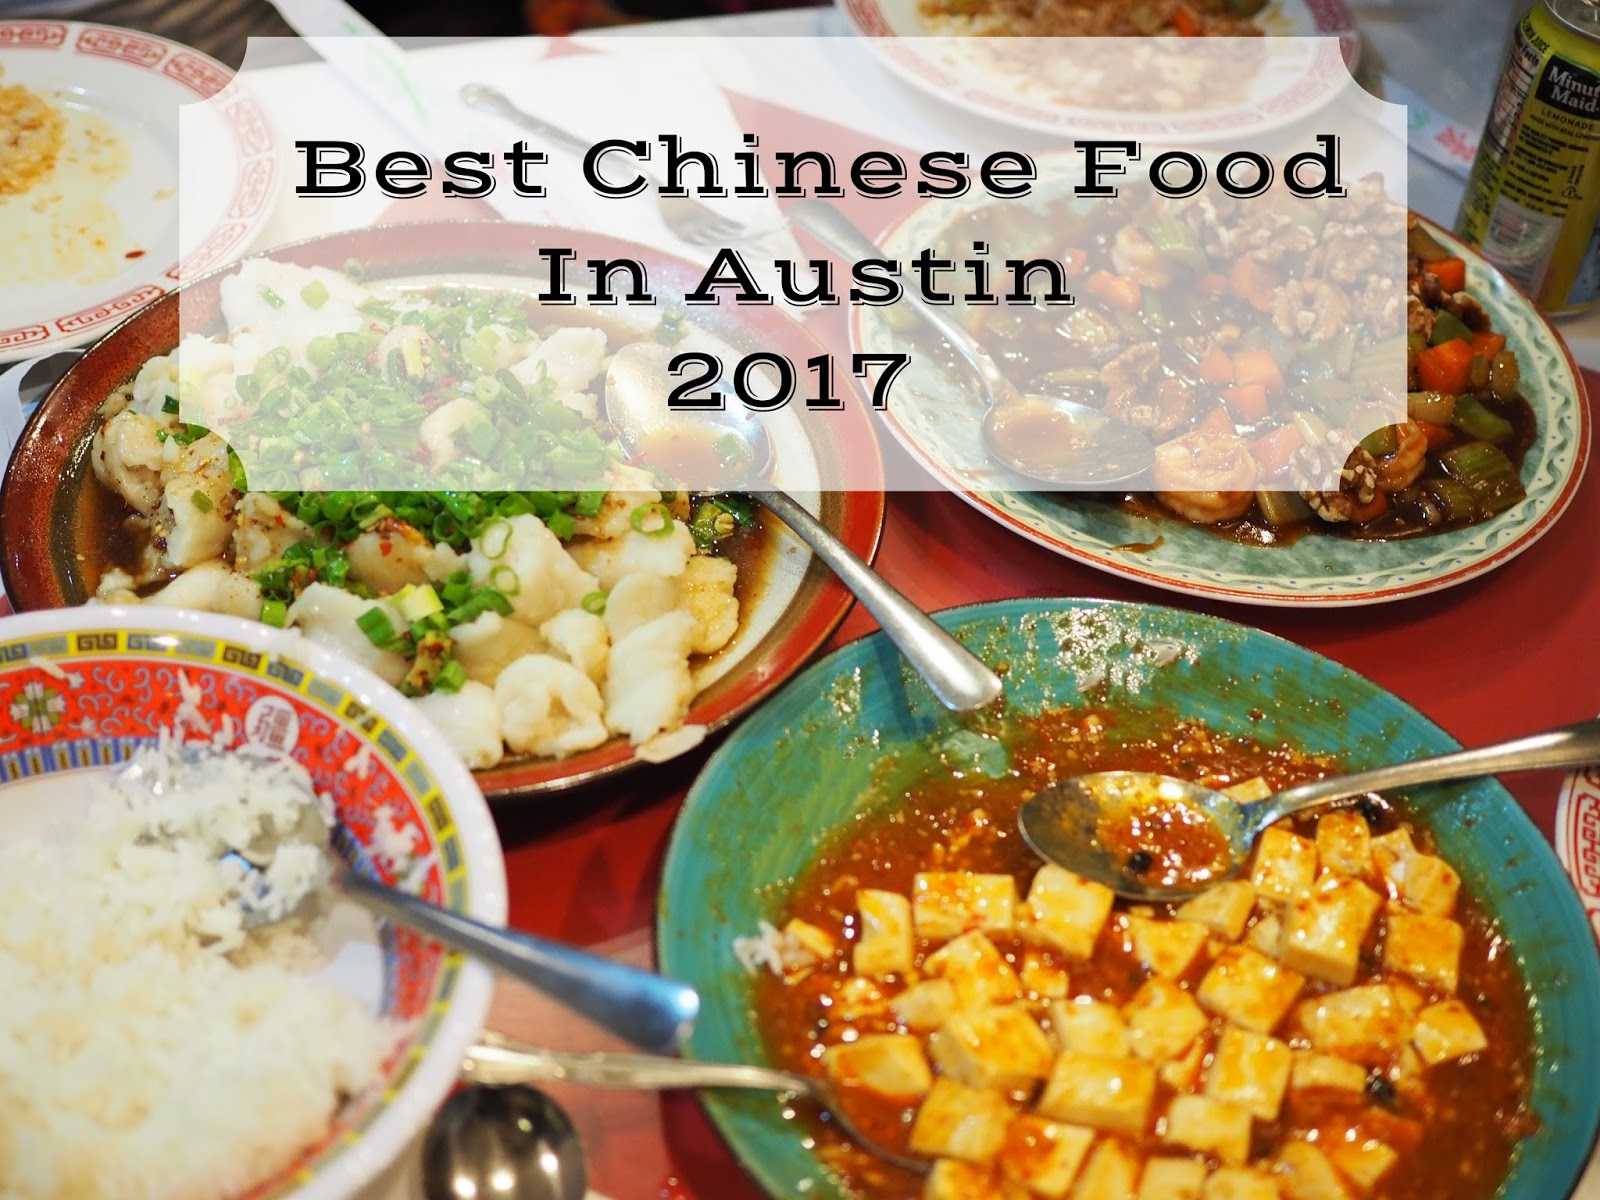 Foodie is the new forty best chinese food in austin 2017 edition once again for 2017 ive updated my guide to the best chinese food in austin for the austin food blogger alliance city guide forumfinder